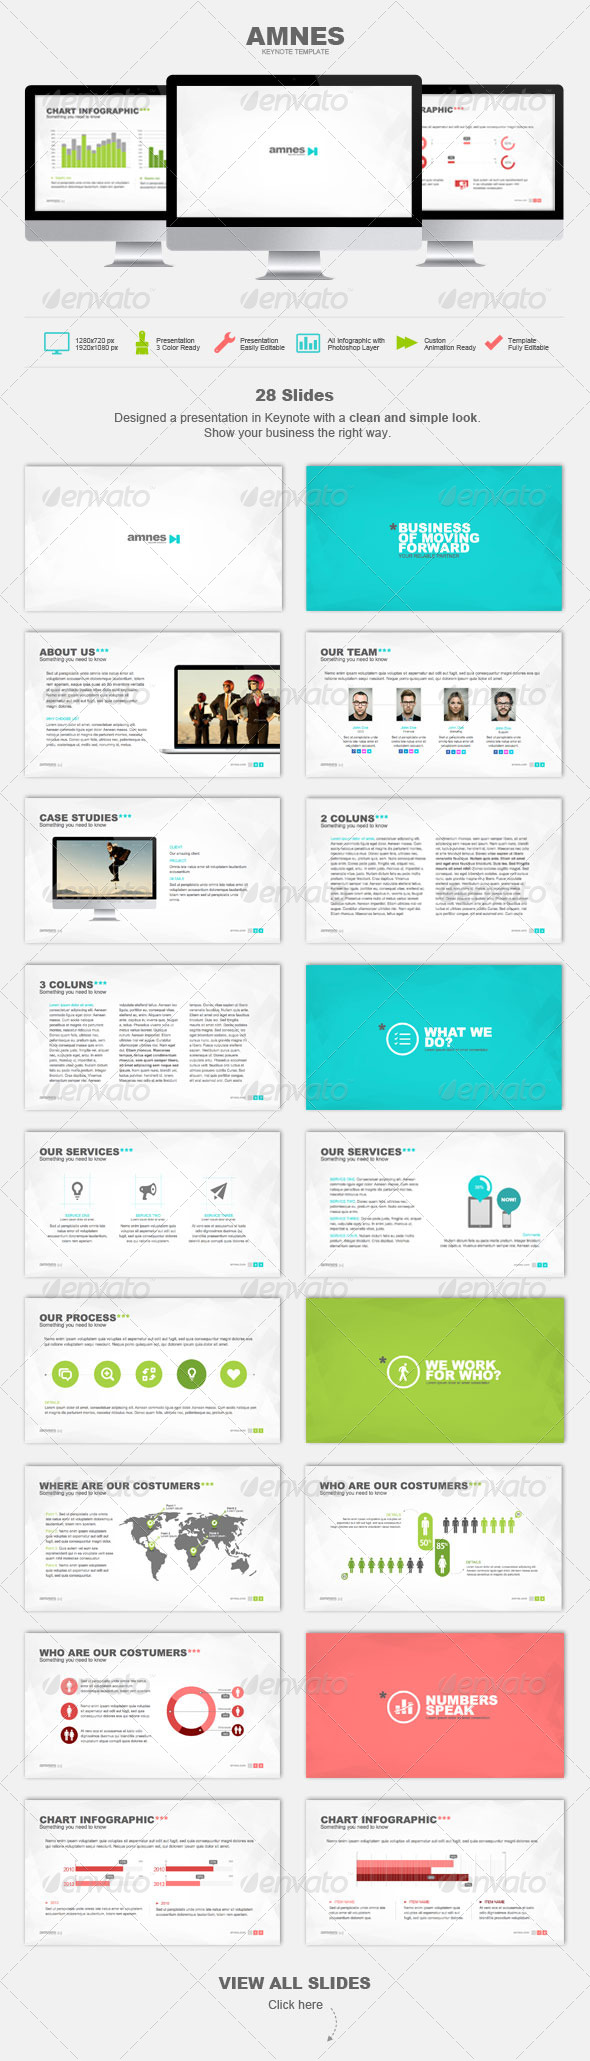 GraphicRiver AMNES Keynote Template 4815747